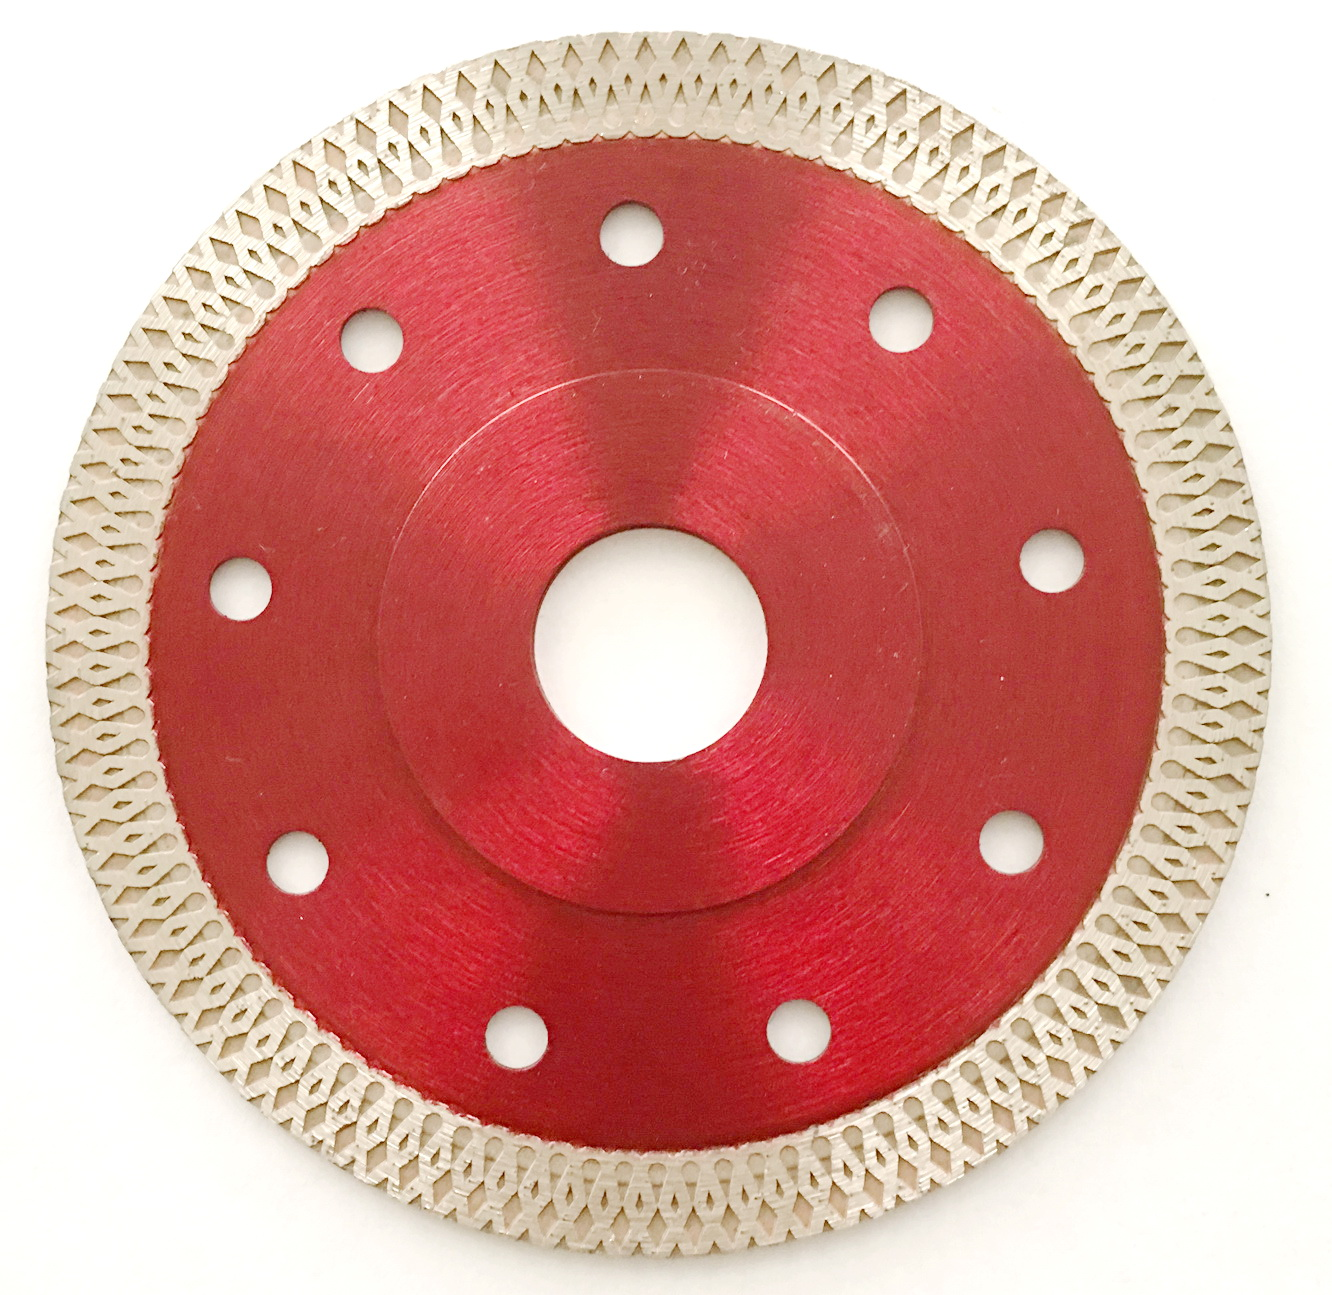 Matrix turbo diamond blade